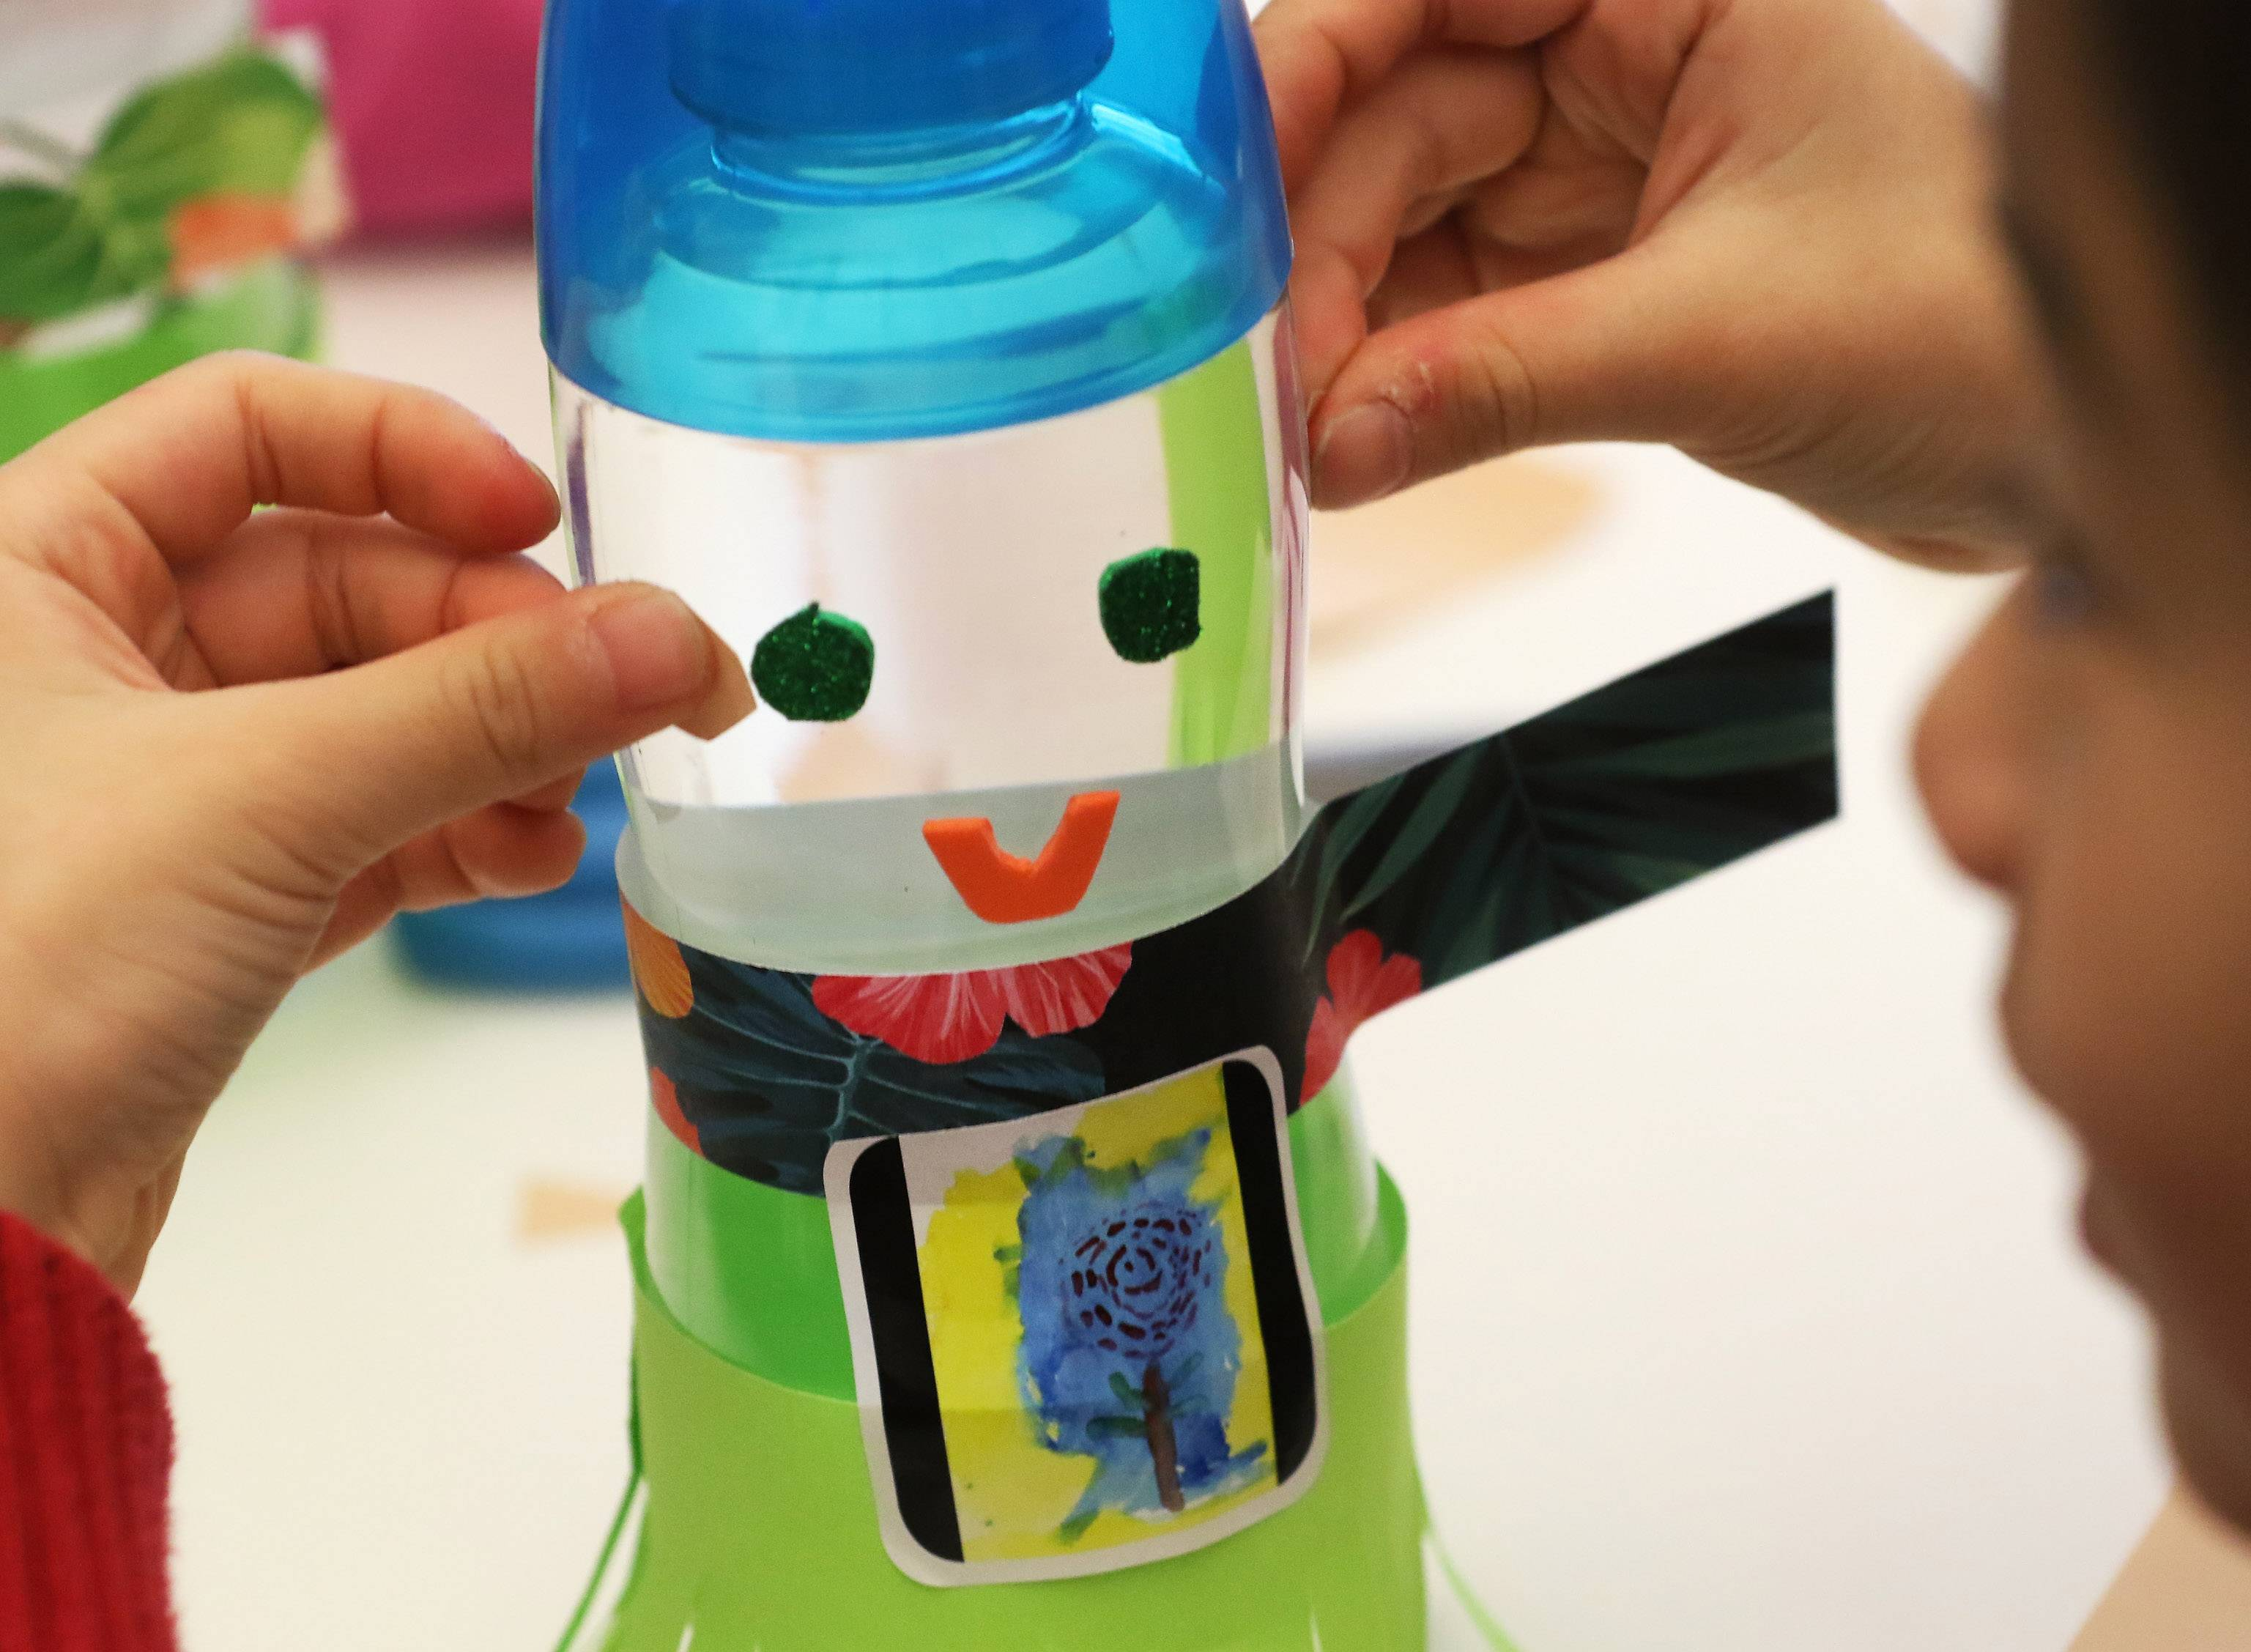 Children made snowman shakers during Make-And-Take Tropical Snowman on Wednesday at Vernon Area Public Library in Lincolnshire. Using plastic water battles, glitter and Hawaiian-themed paper, the children created the craft with their parents and caregivers.